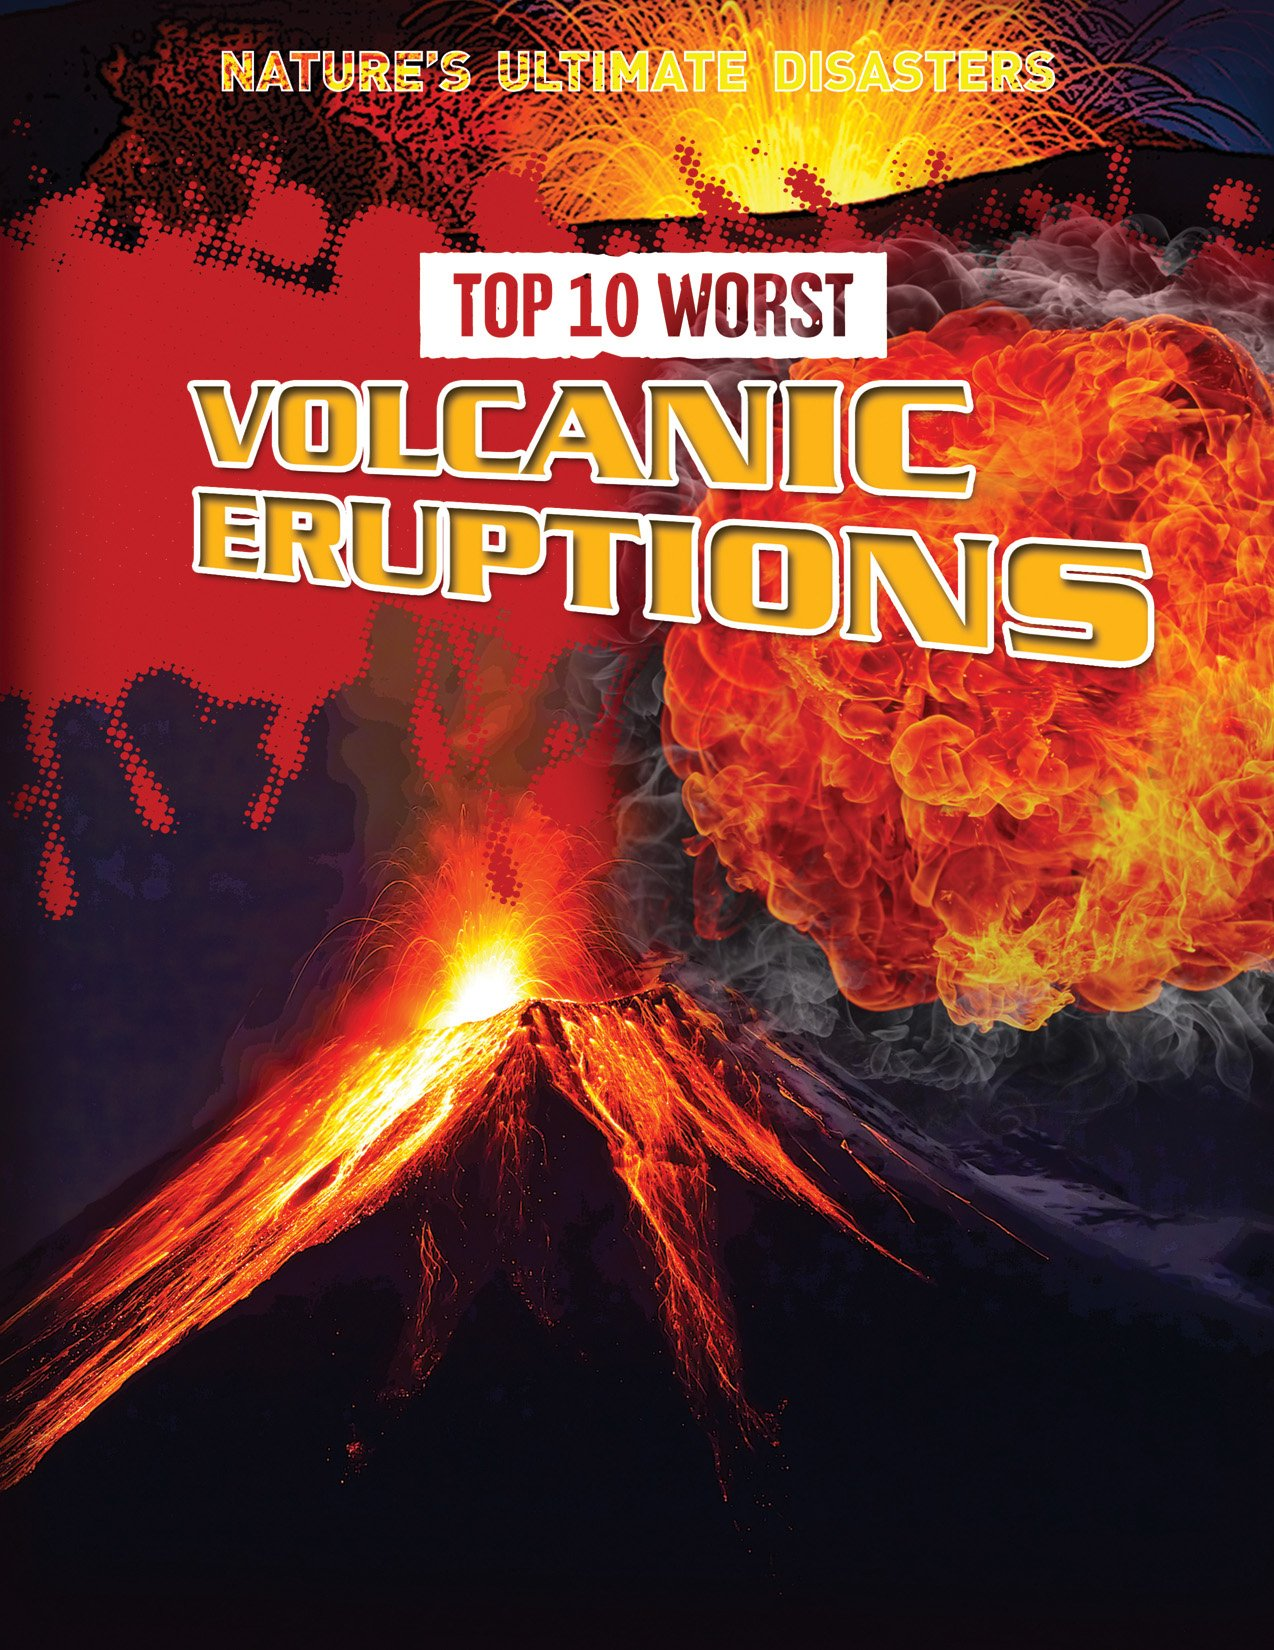 Top 10 Worst Volcanic Eruptions (Nature's Ultimate Disasters) ebook